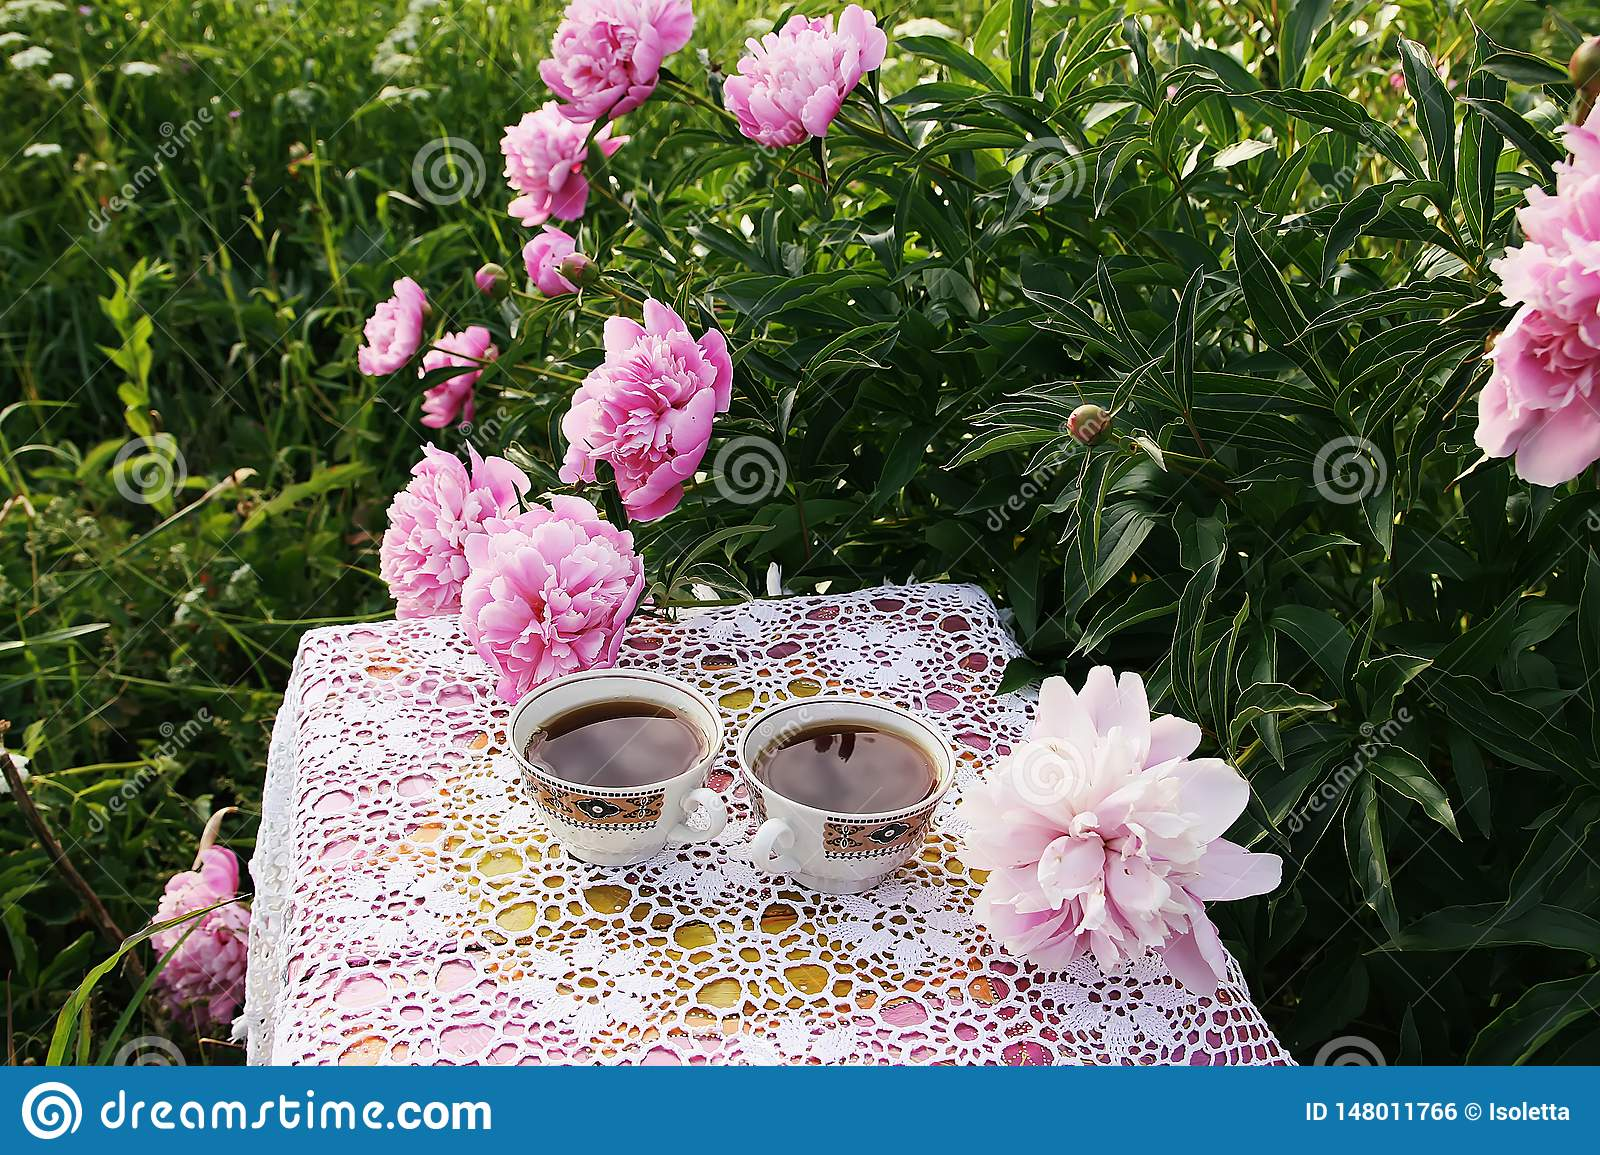 Tea in country style in summer garden in the village. Two cups of black tea on crocheted vintage lacy tablecloth and blooming